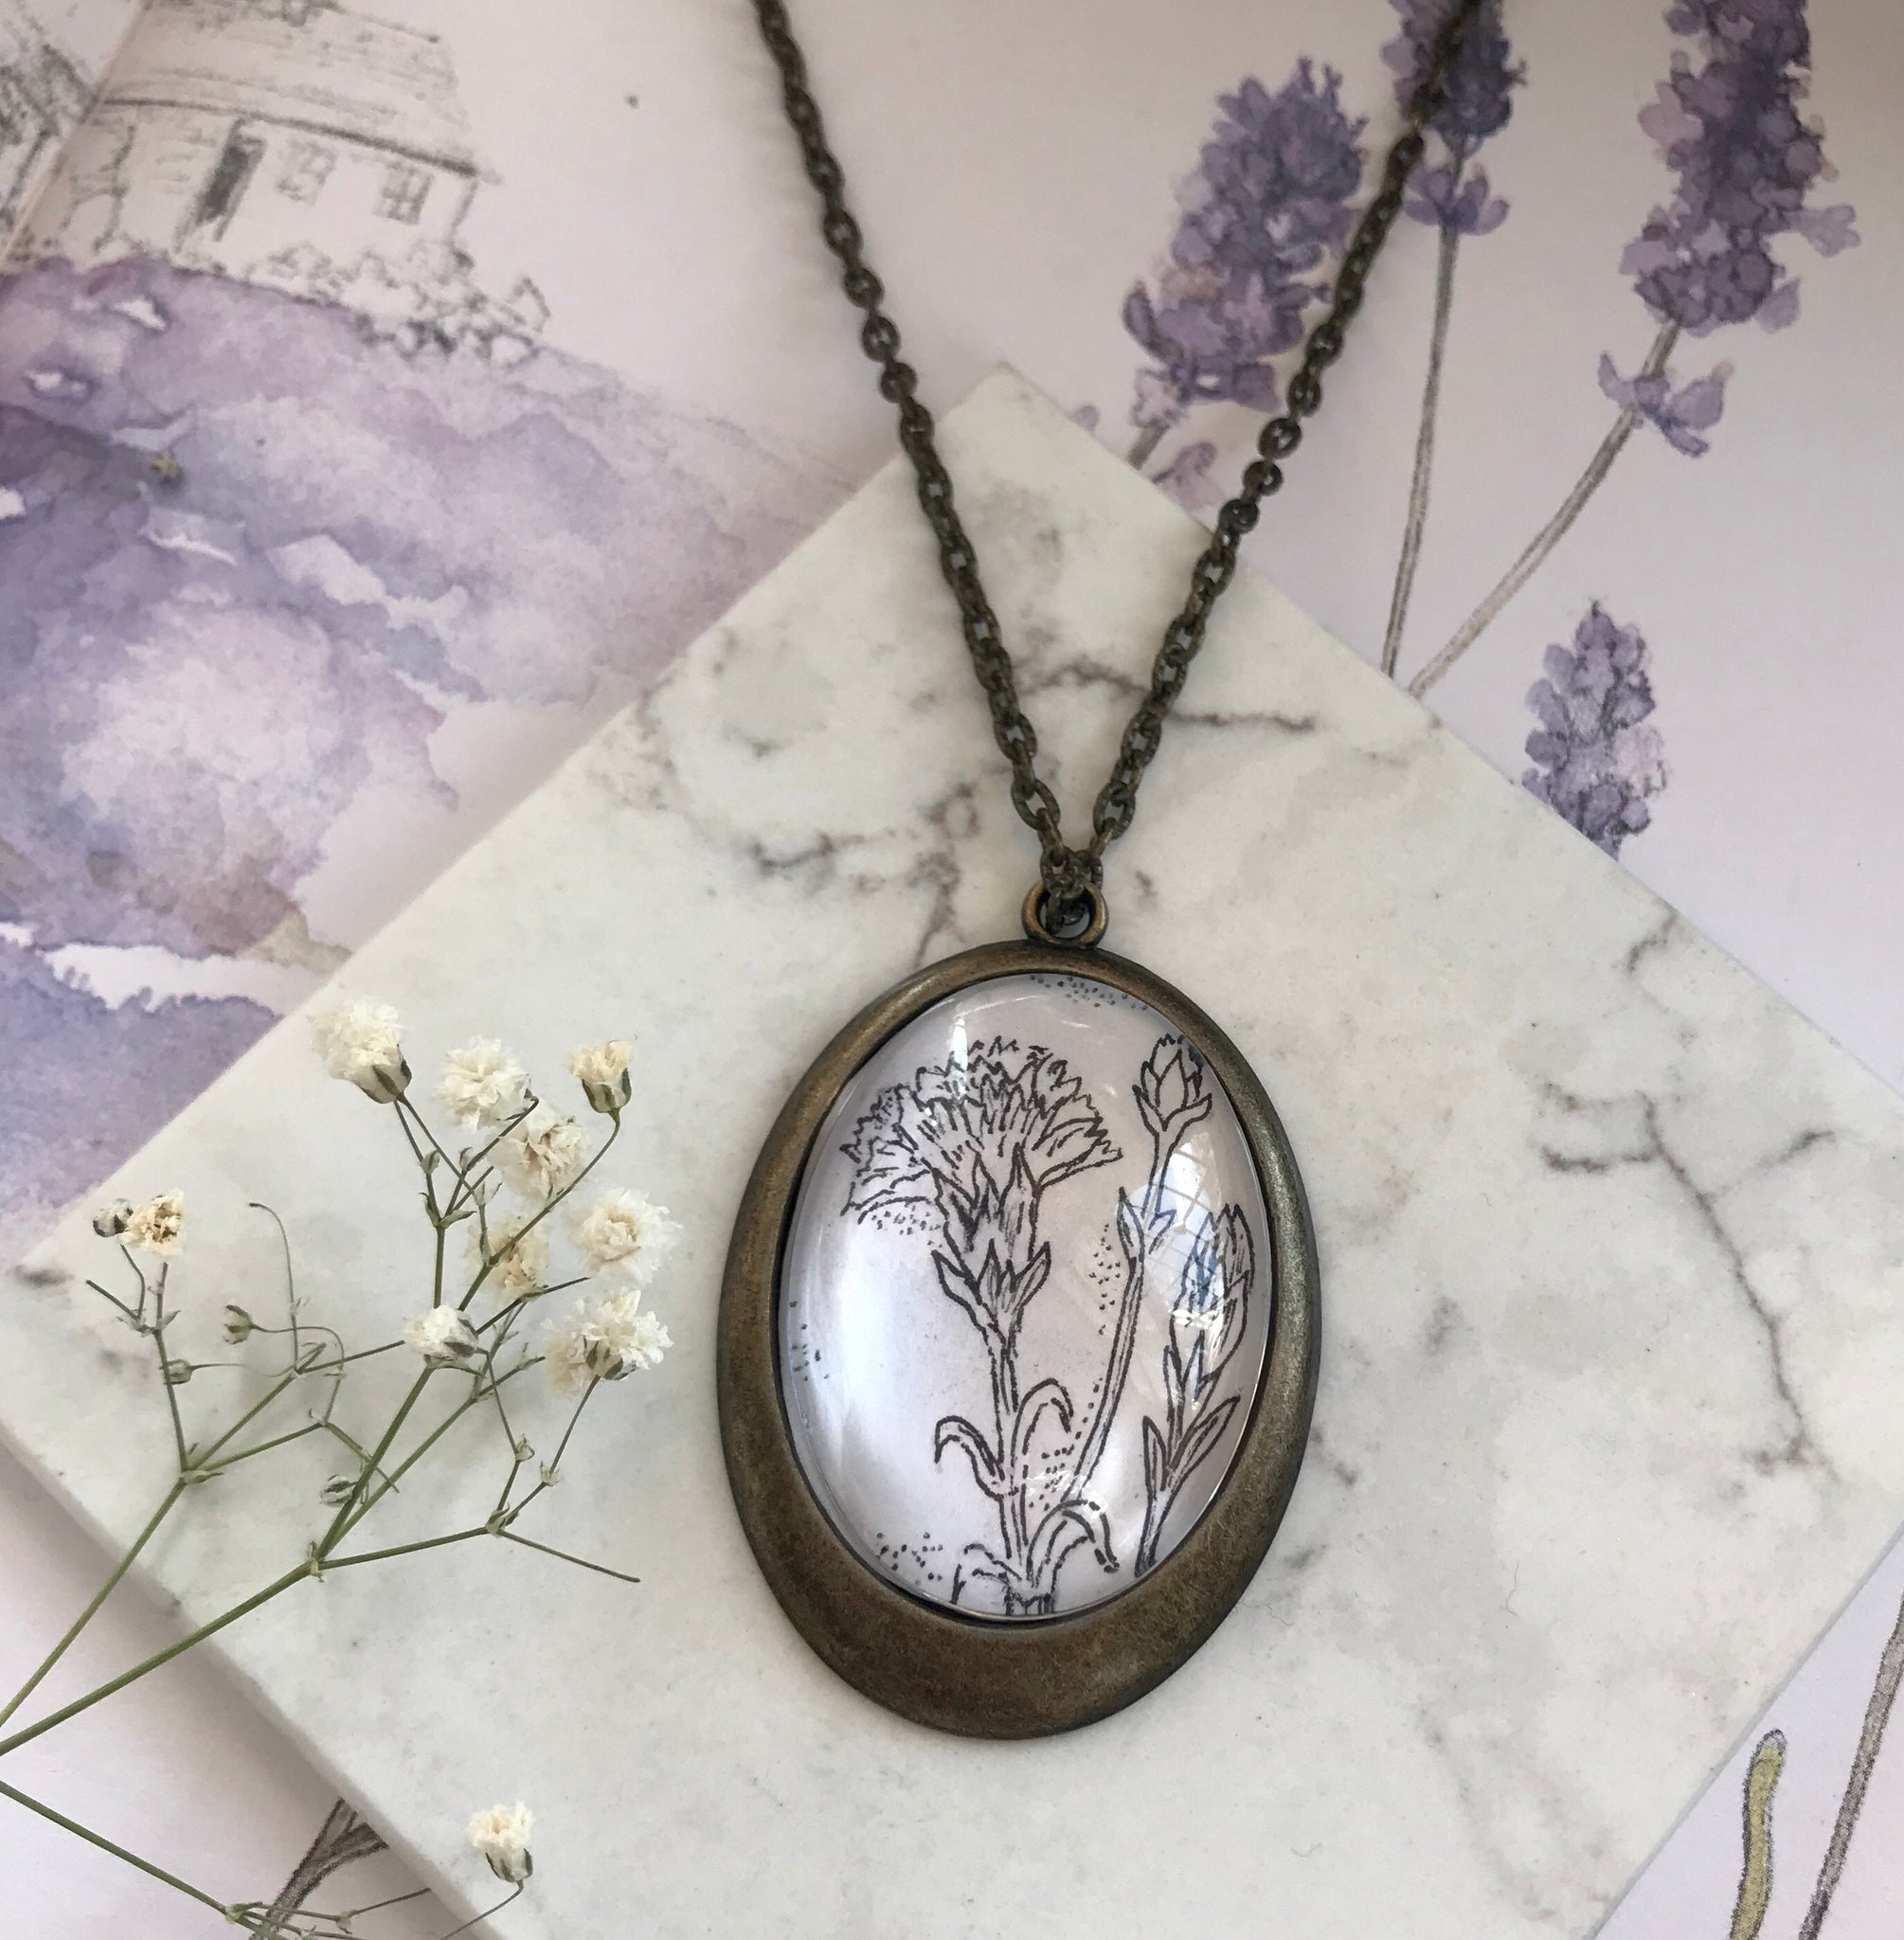 Carnation hand-drawn pendant - January birth flower